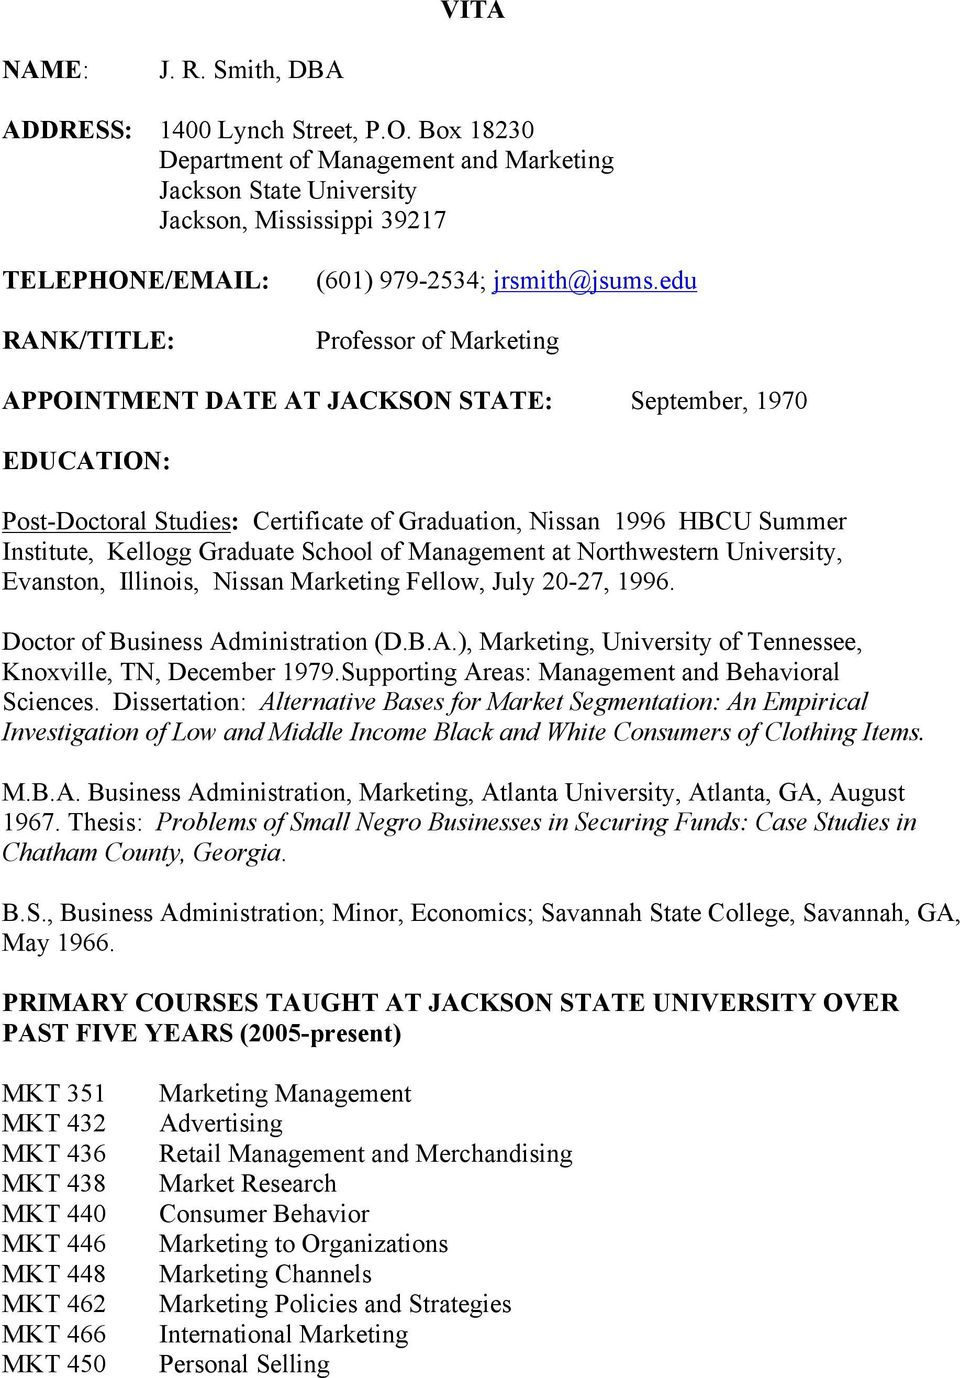 edu Professor of Marketing APPOINTMENT DATE AT JACKSON STATE: September, 1970 EDUCATION: Post-Doctoral Studies: Certificate of Graduation, Nissan 1996 HBCU Summer Institute, Kellogg Graduate School